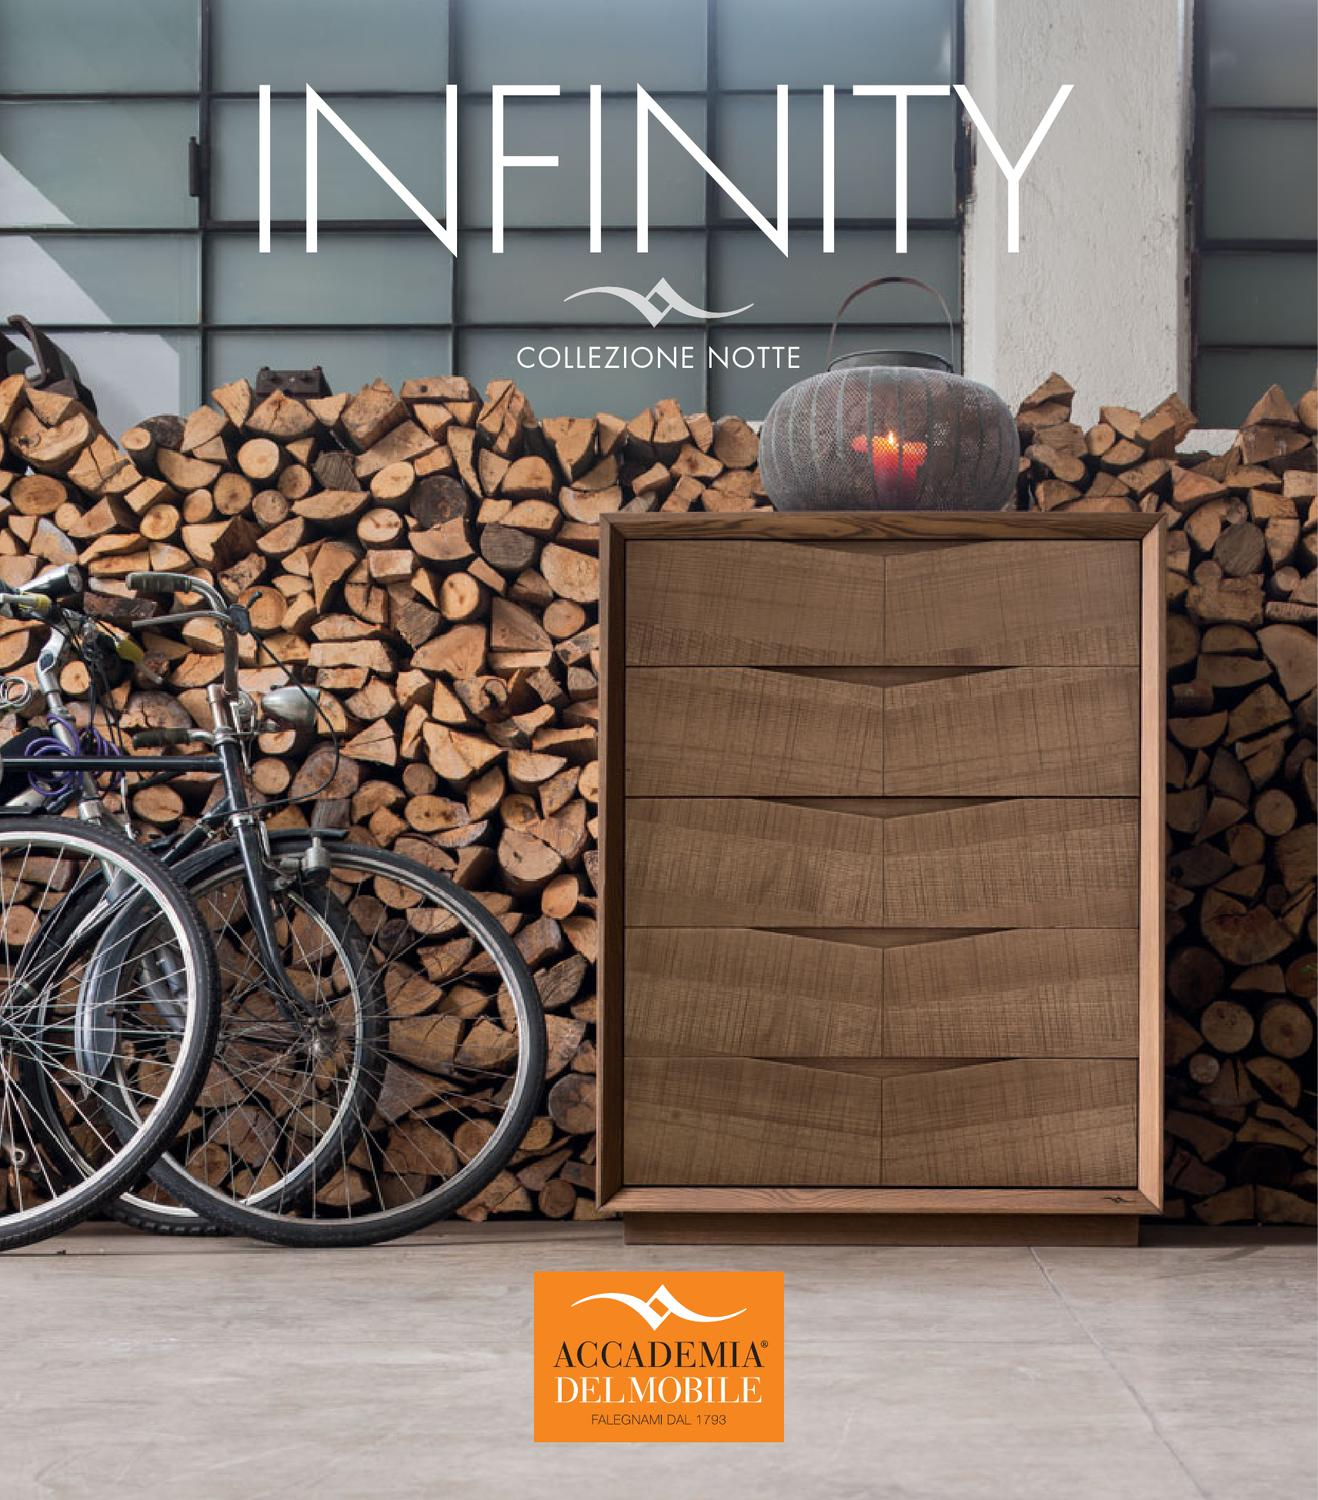 Infinity by accademia del mobile srl issuu - Accademia del mobile outlet ...